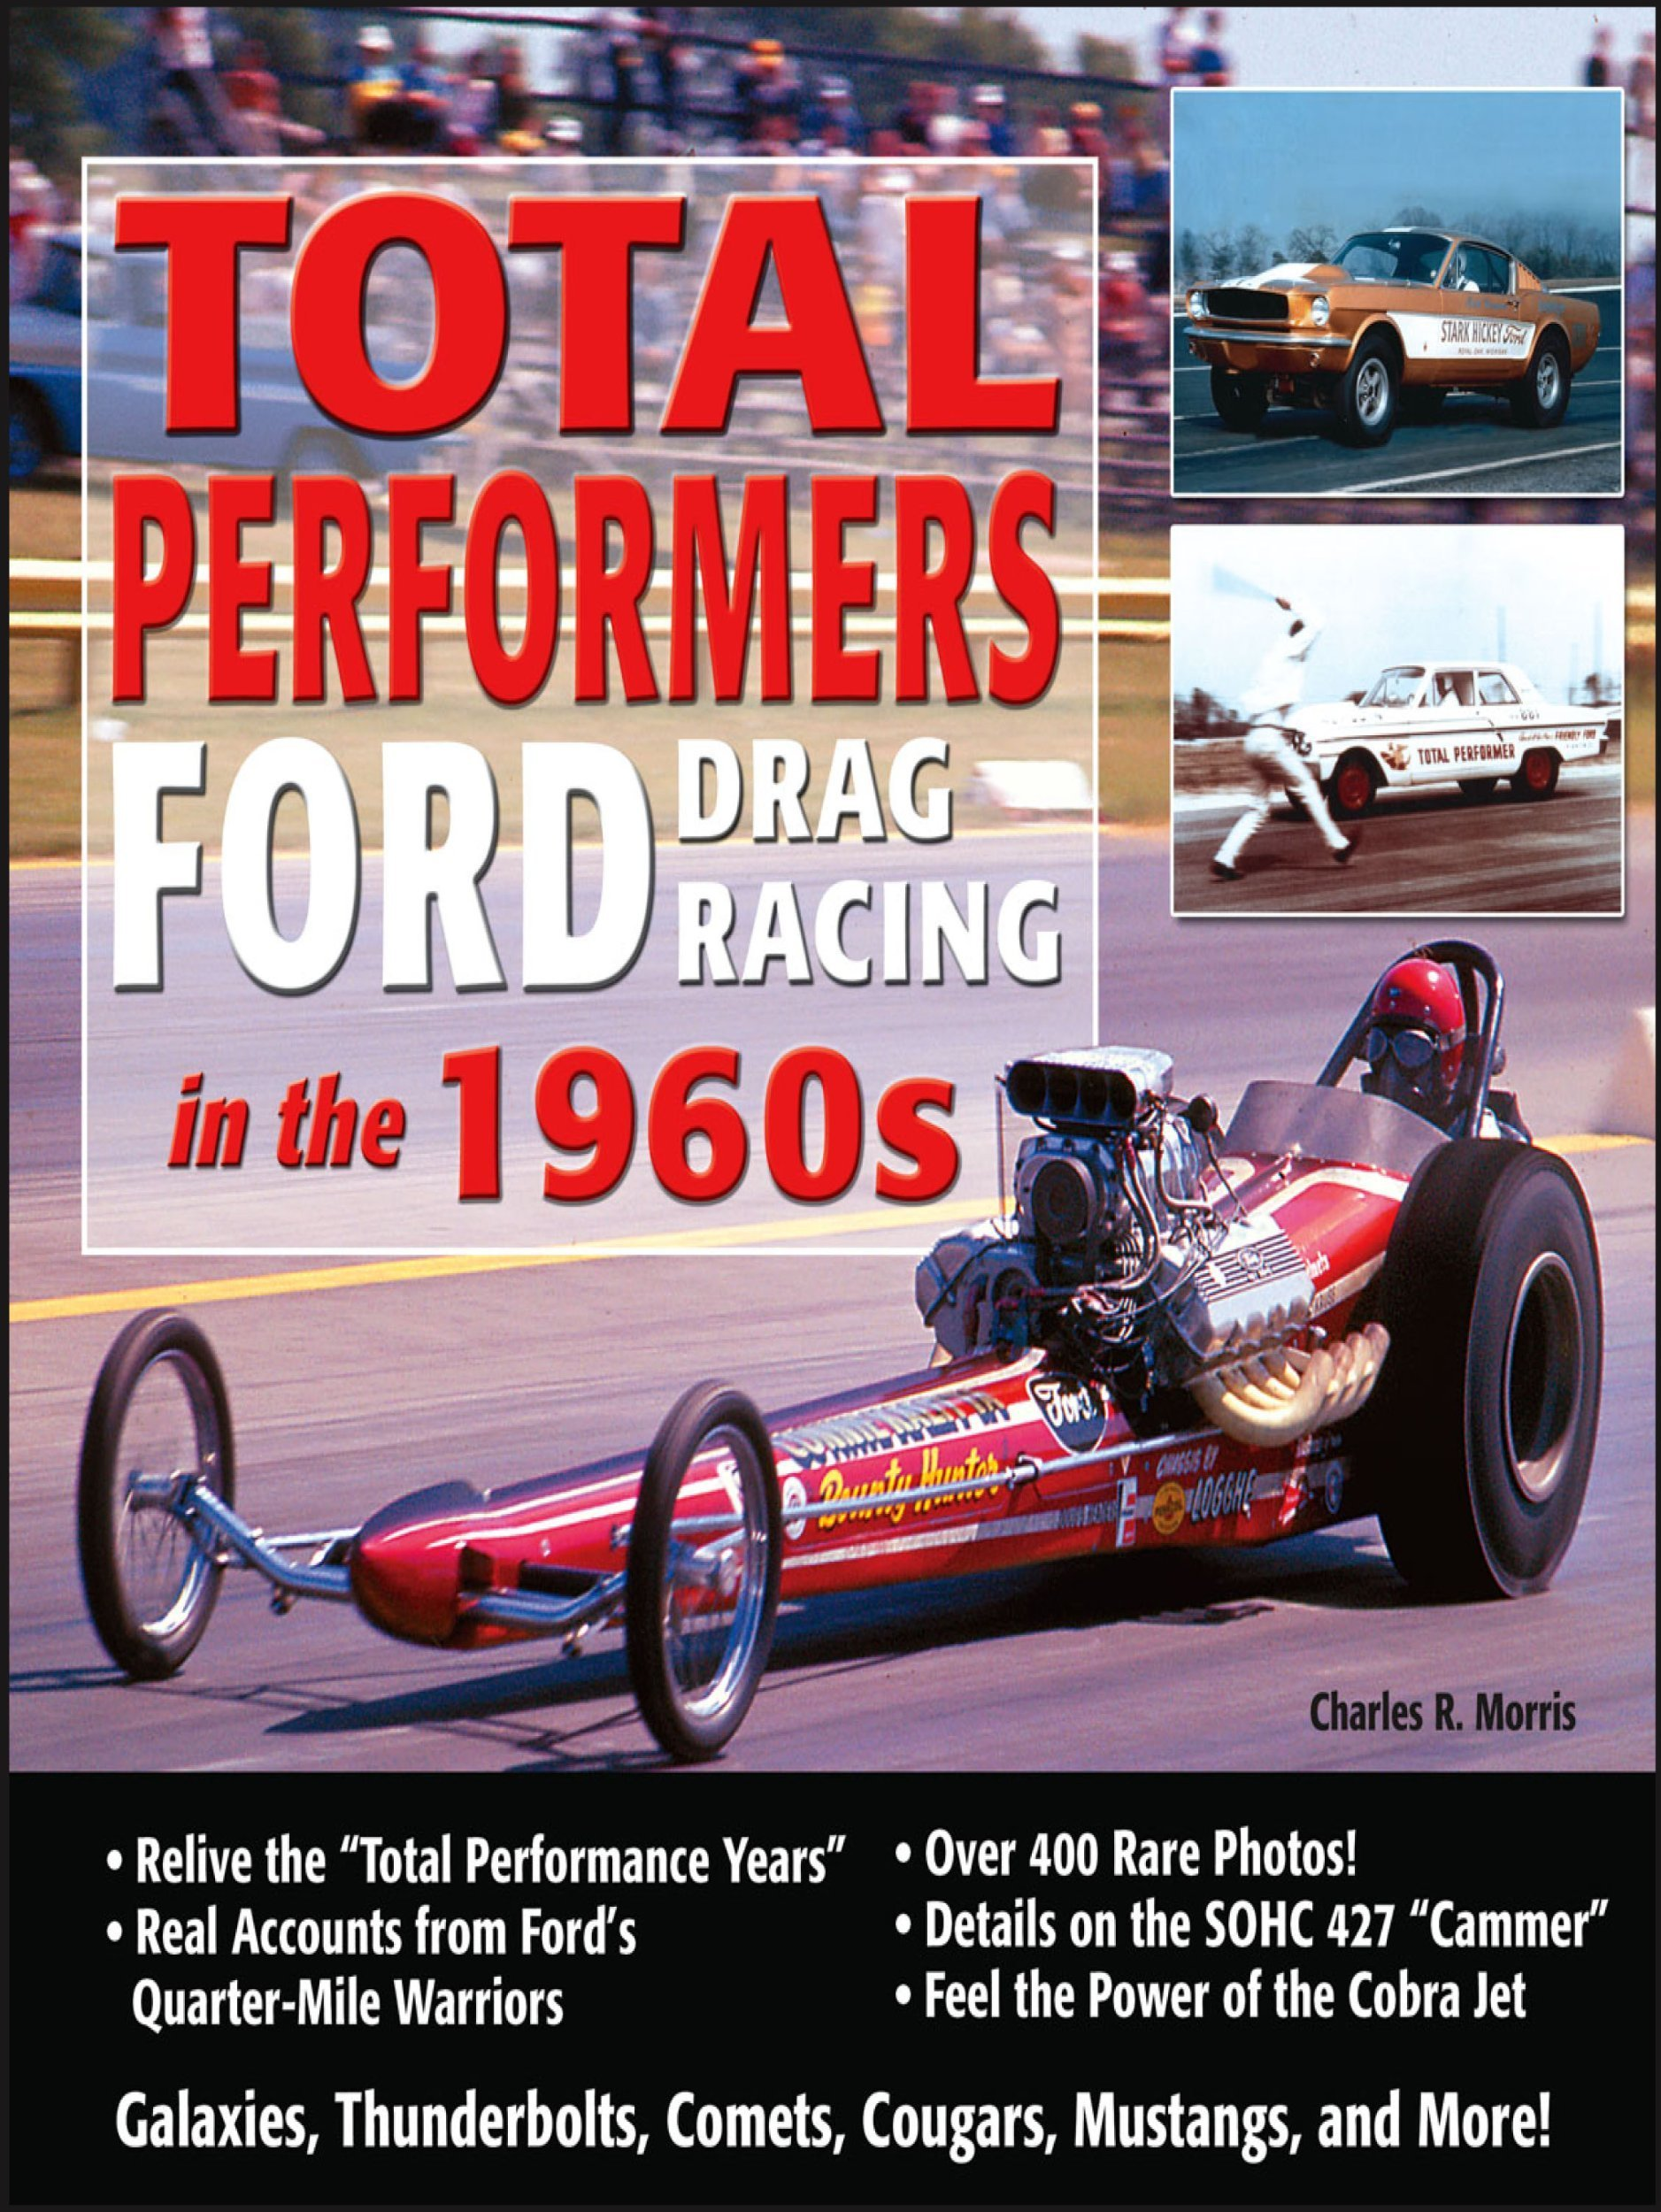 Total Performers-Ford Drag Racing in the 1960s: Charles Morris: 9781932494075: Amazon.com: Books